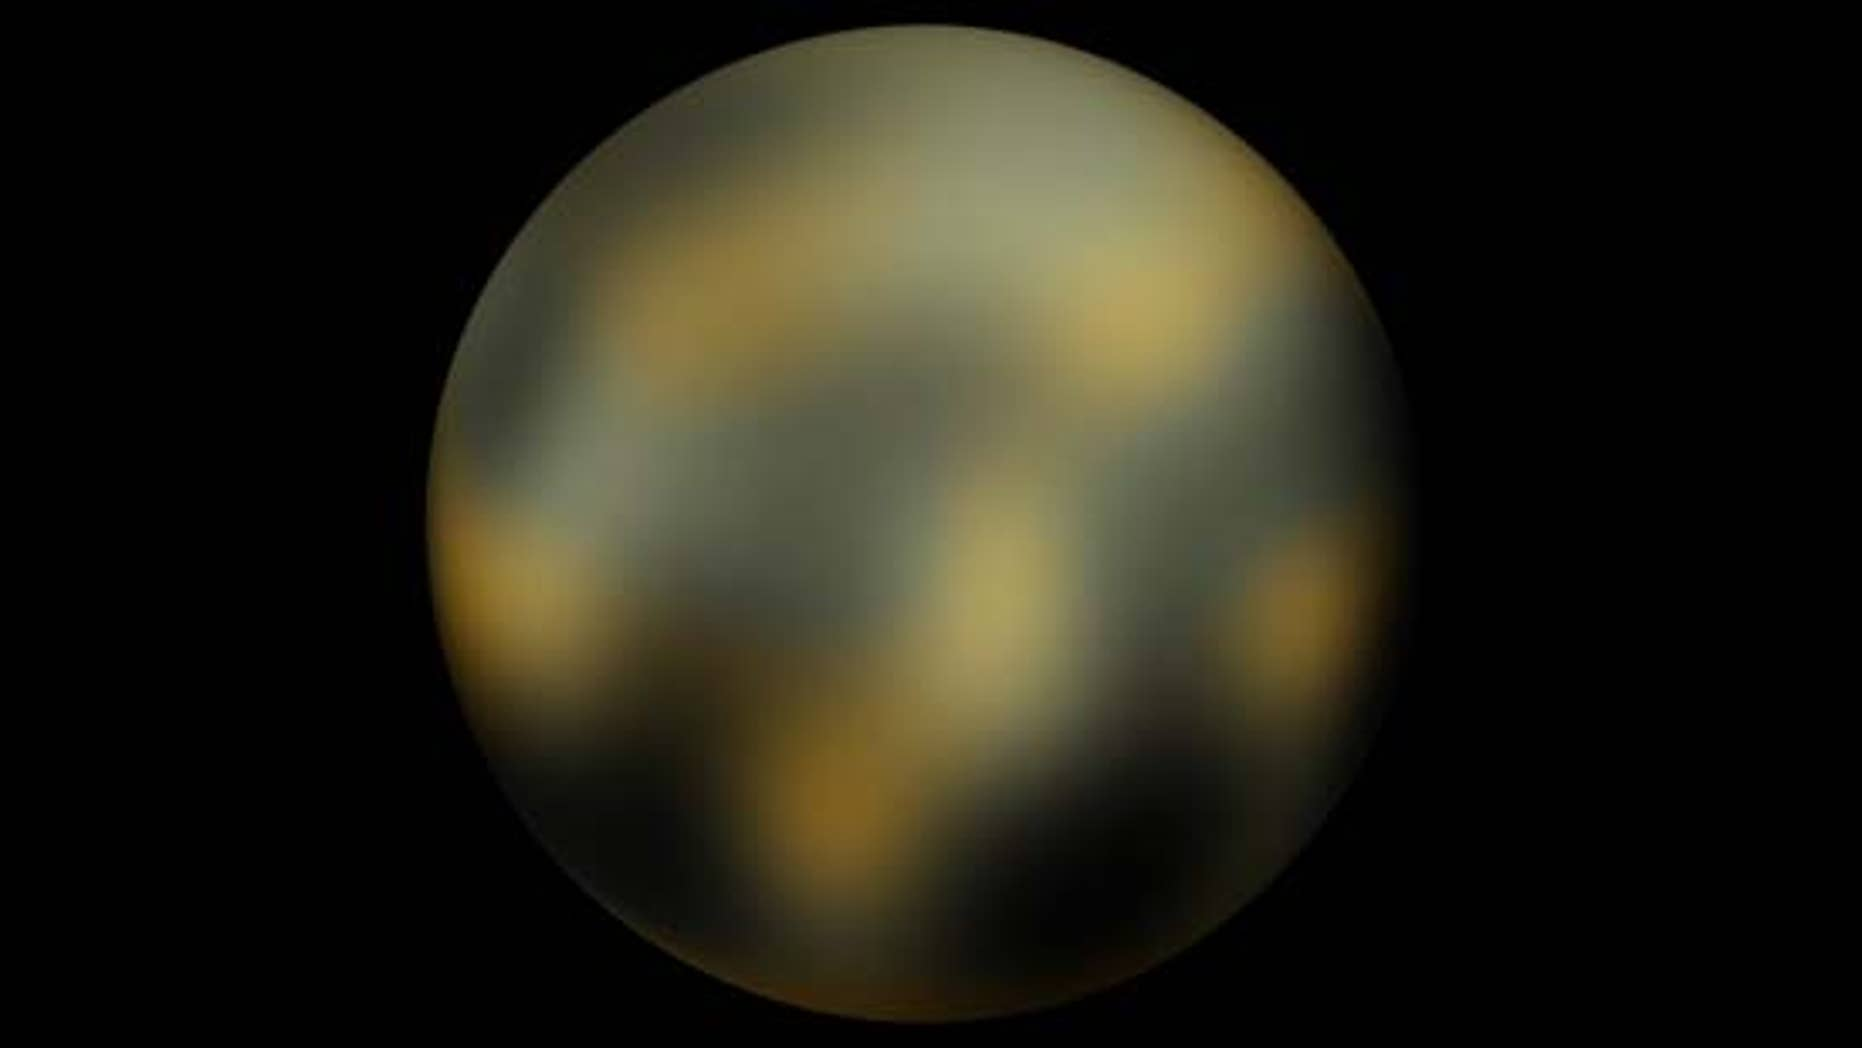 Dwarf planet Pluto is seen in an image taken by the Hubble Space Telescope.